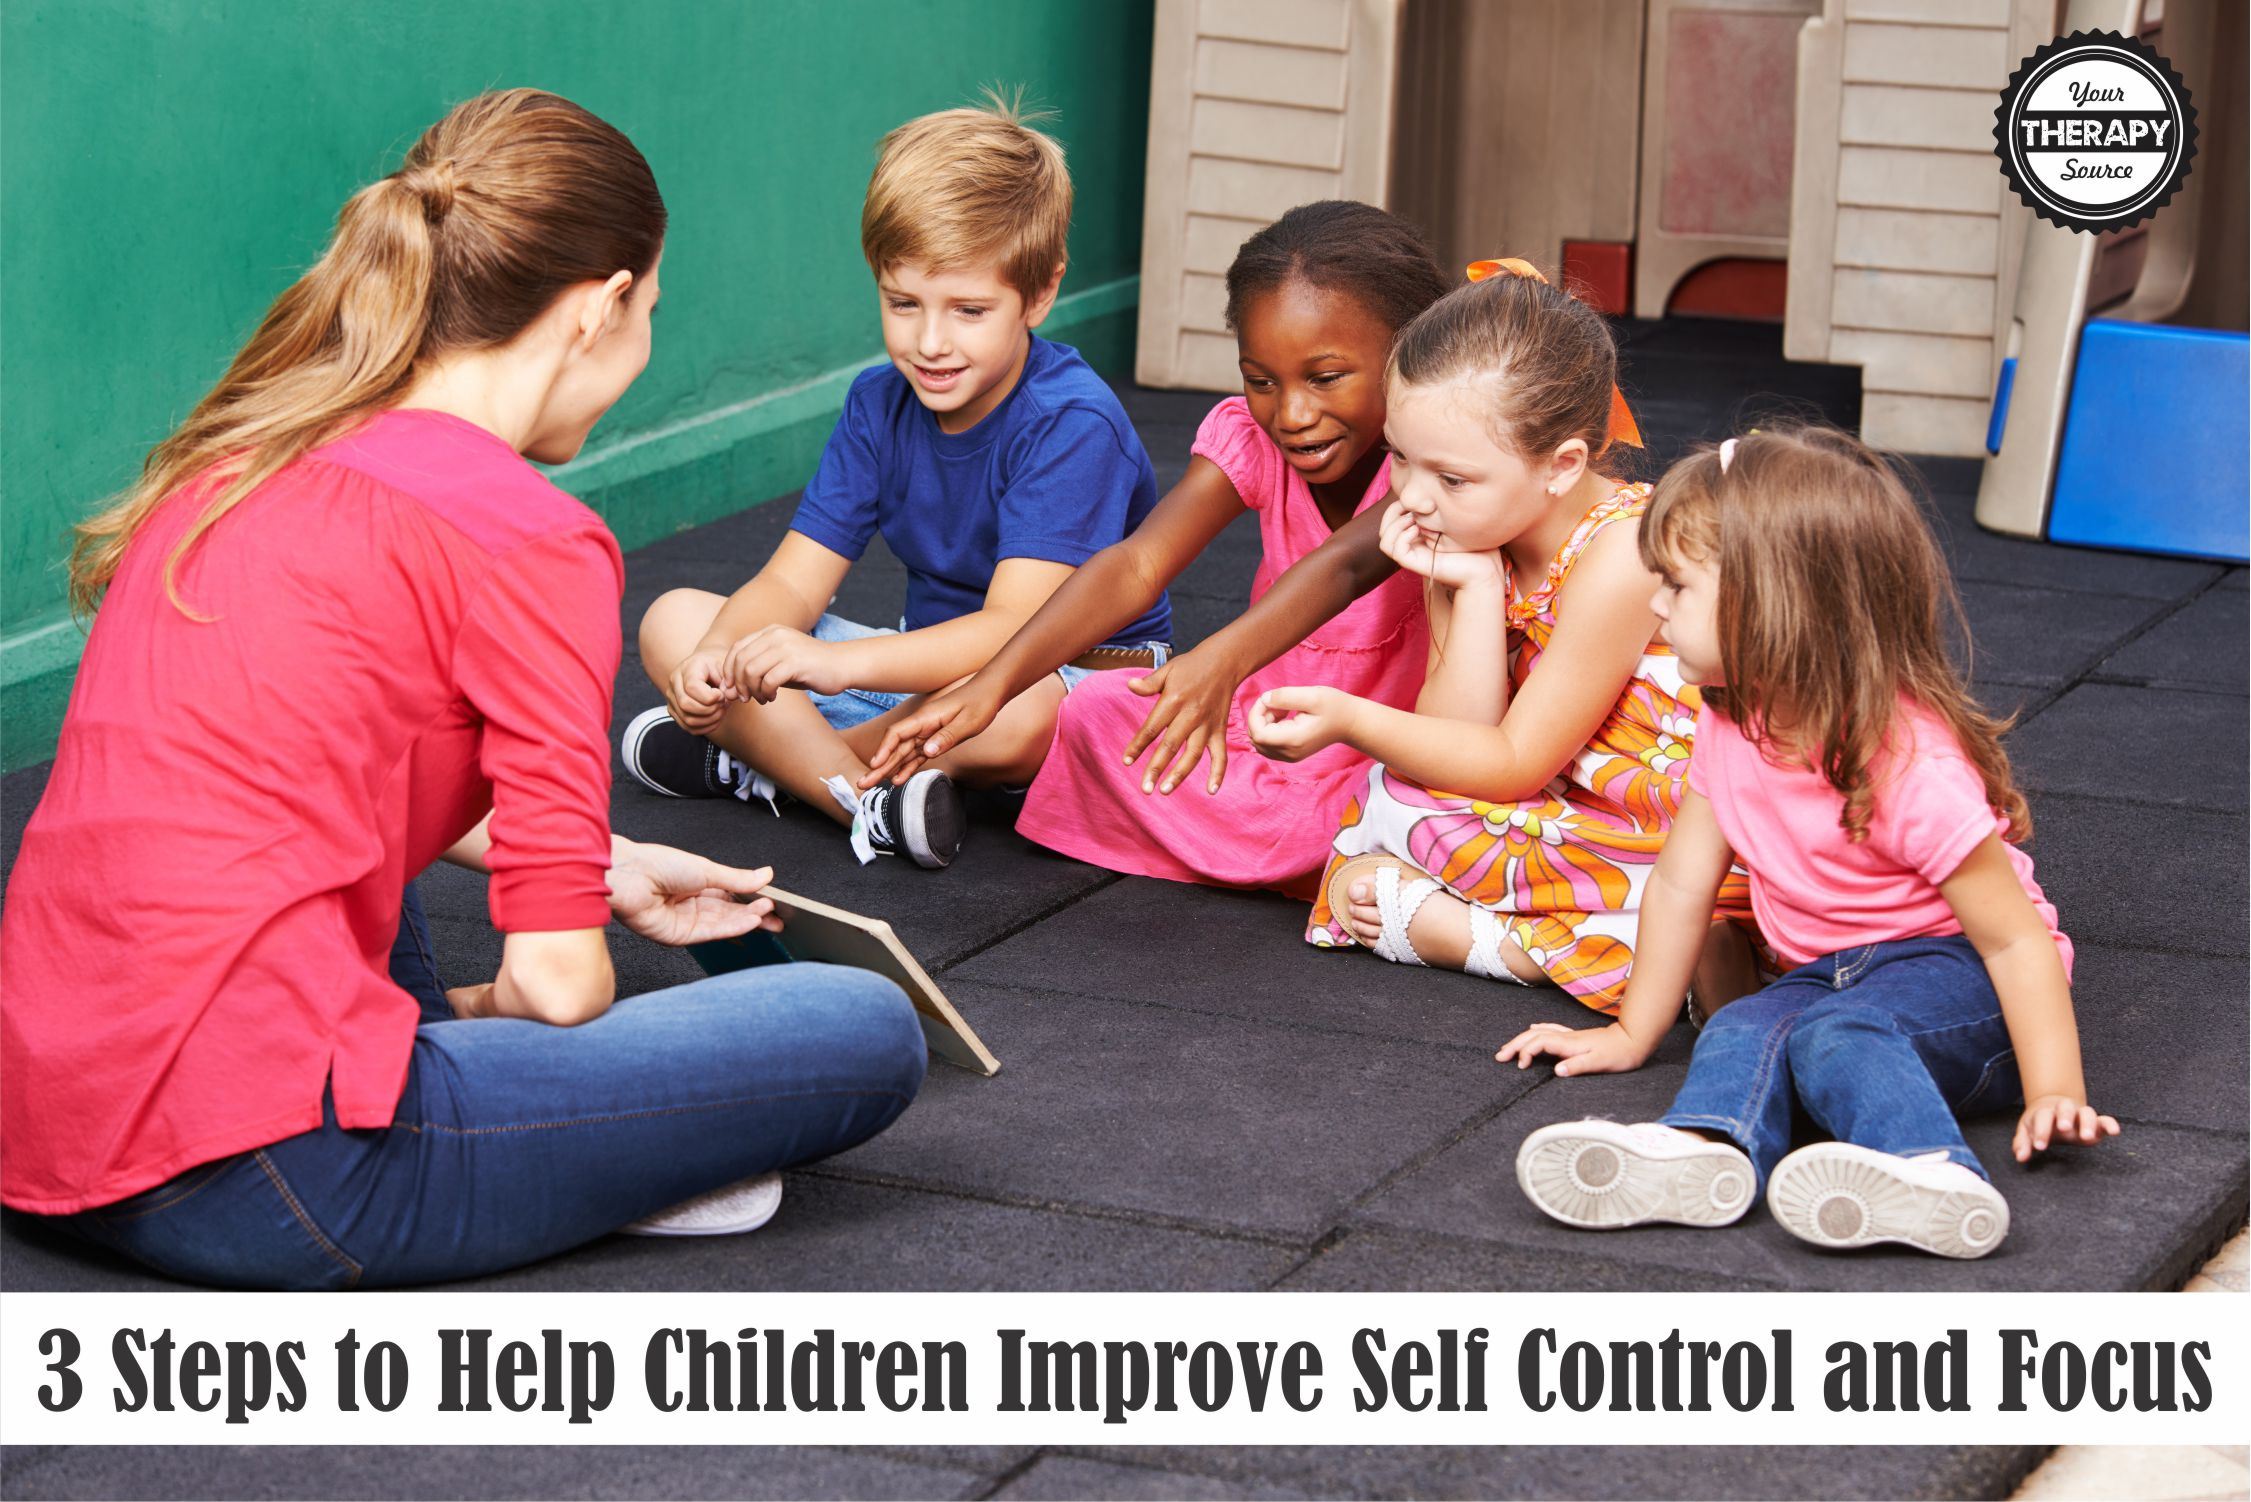 How Can We Help Kids With Self >> 3 Steps To Help Children Improve Self Control And Focus Your